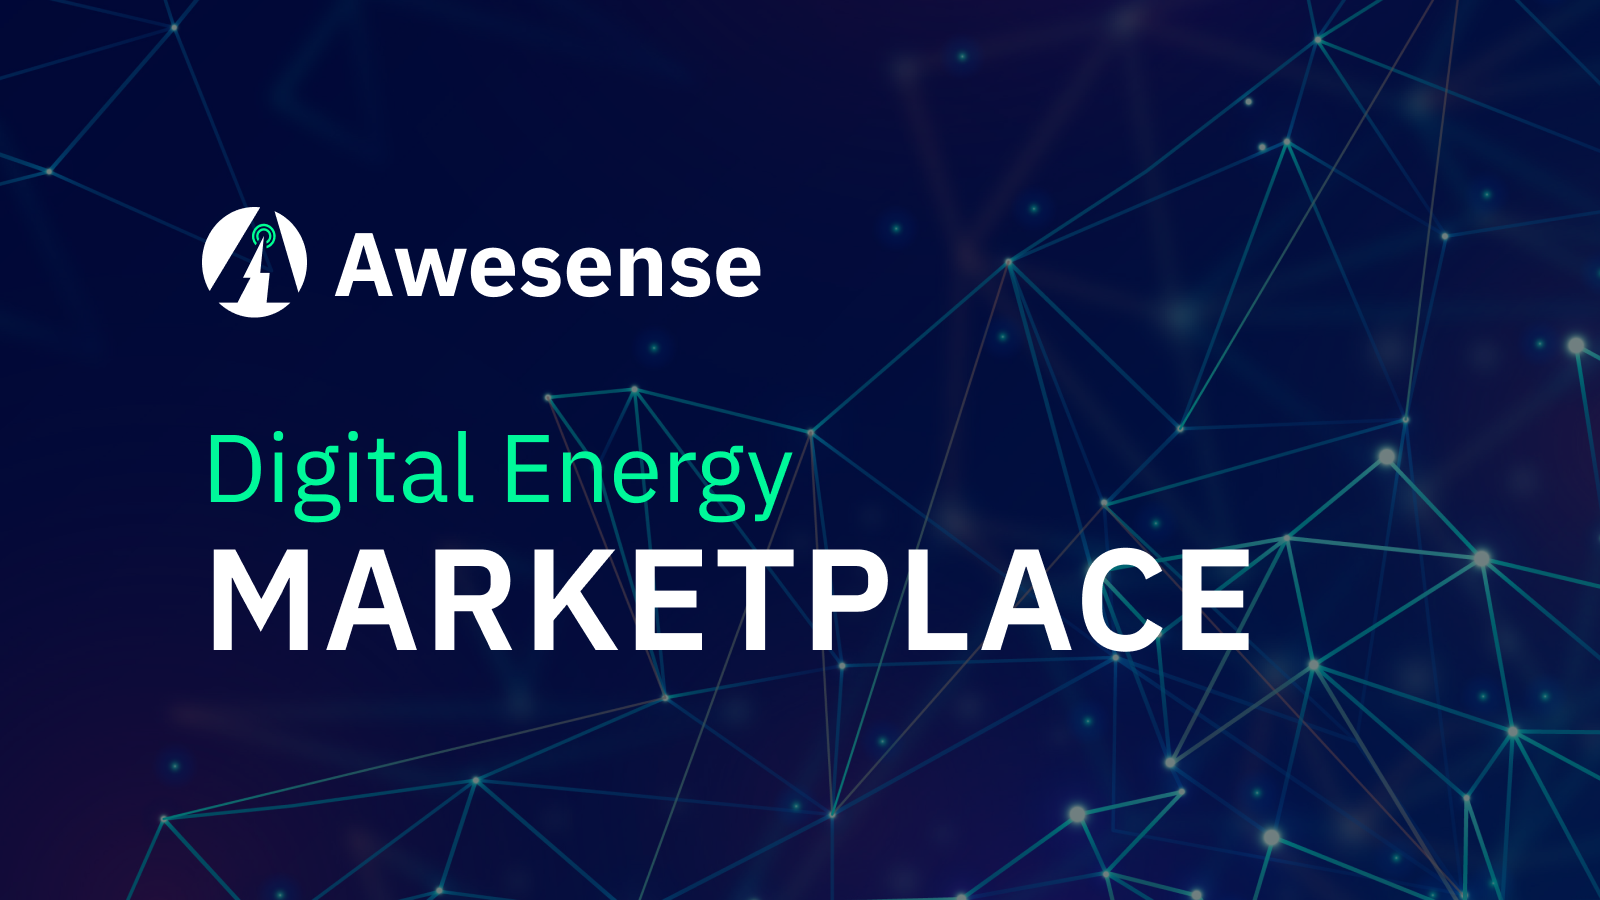 Awesense launches one-of-a-kind digital energy Marketplace to empower development of clean energy solutions